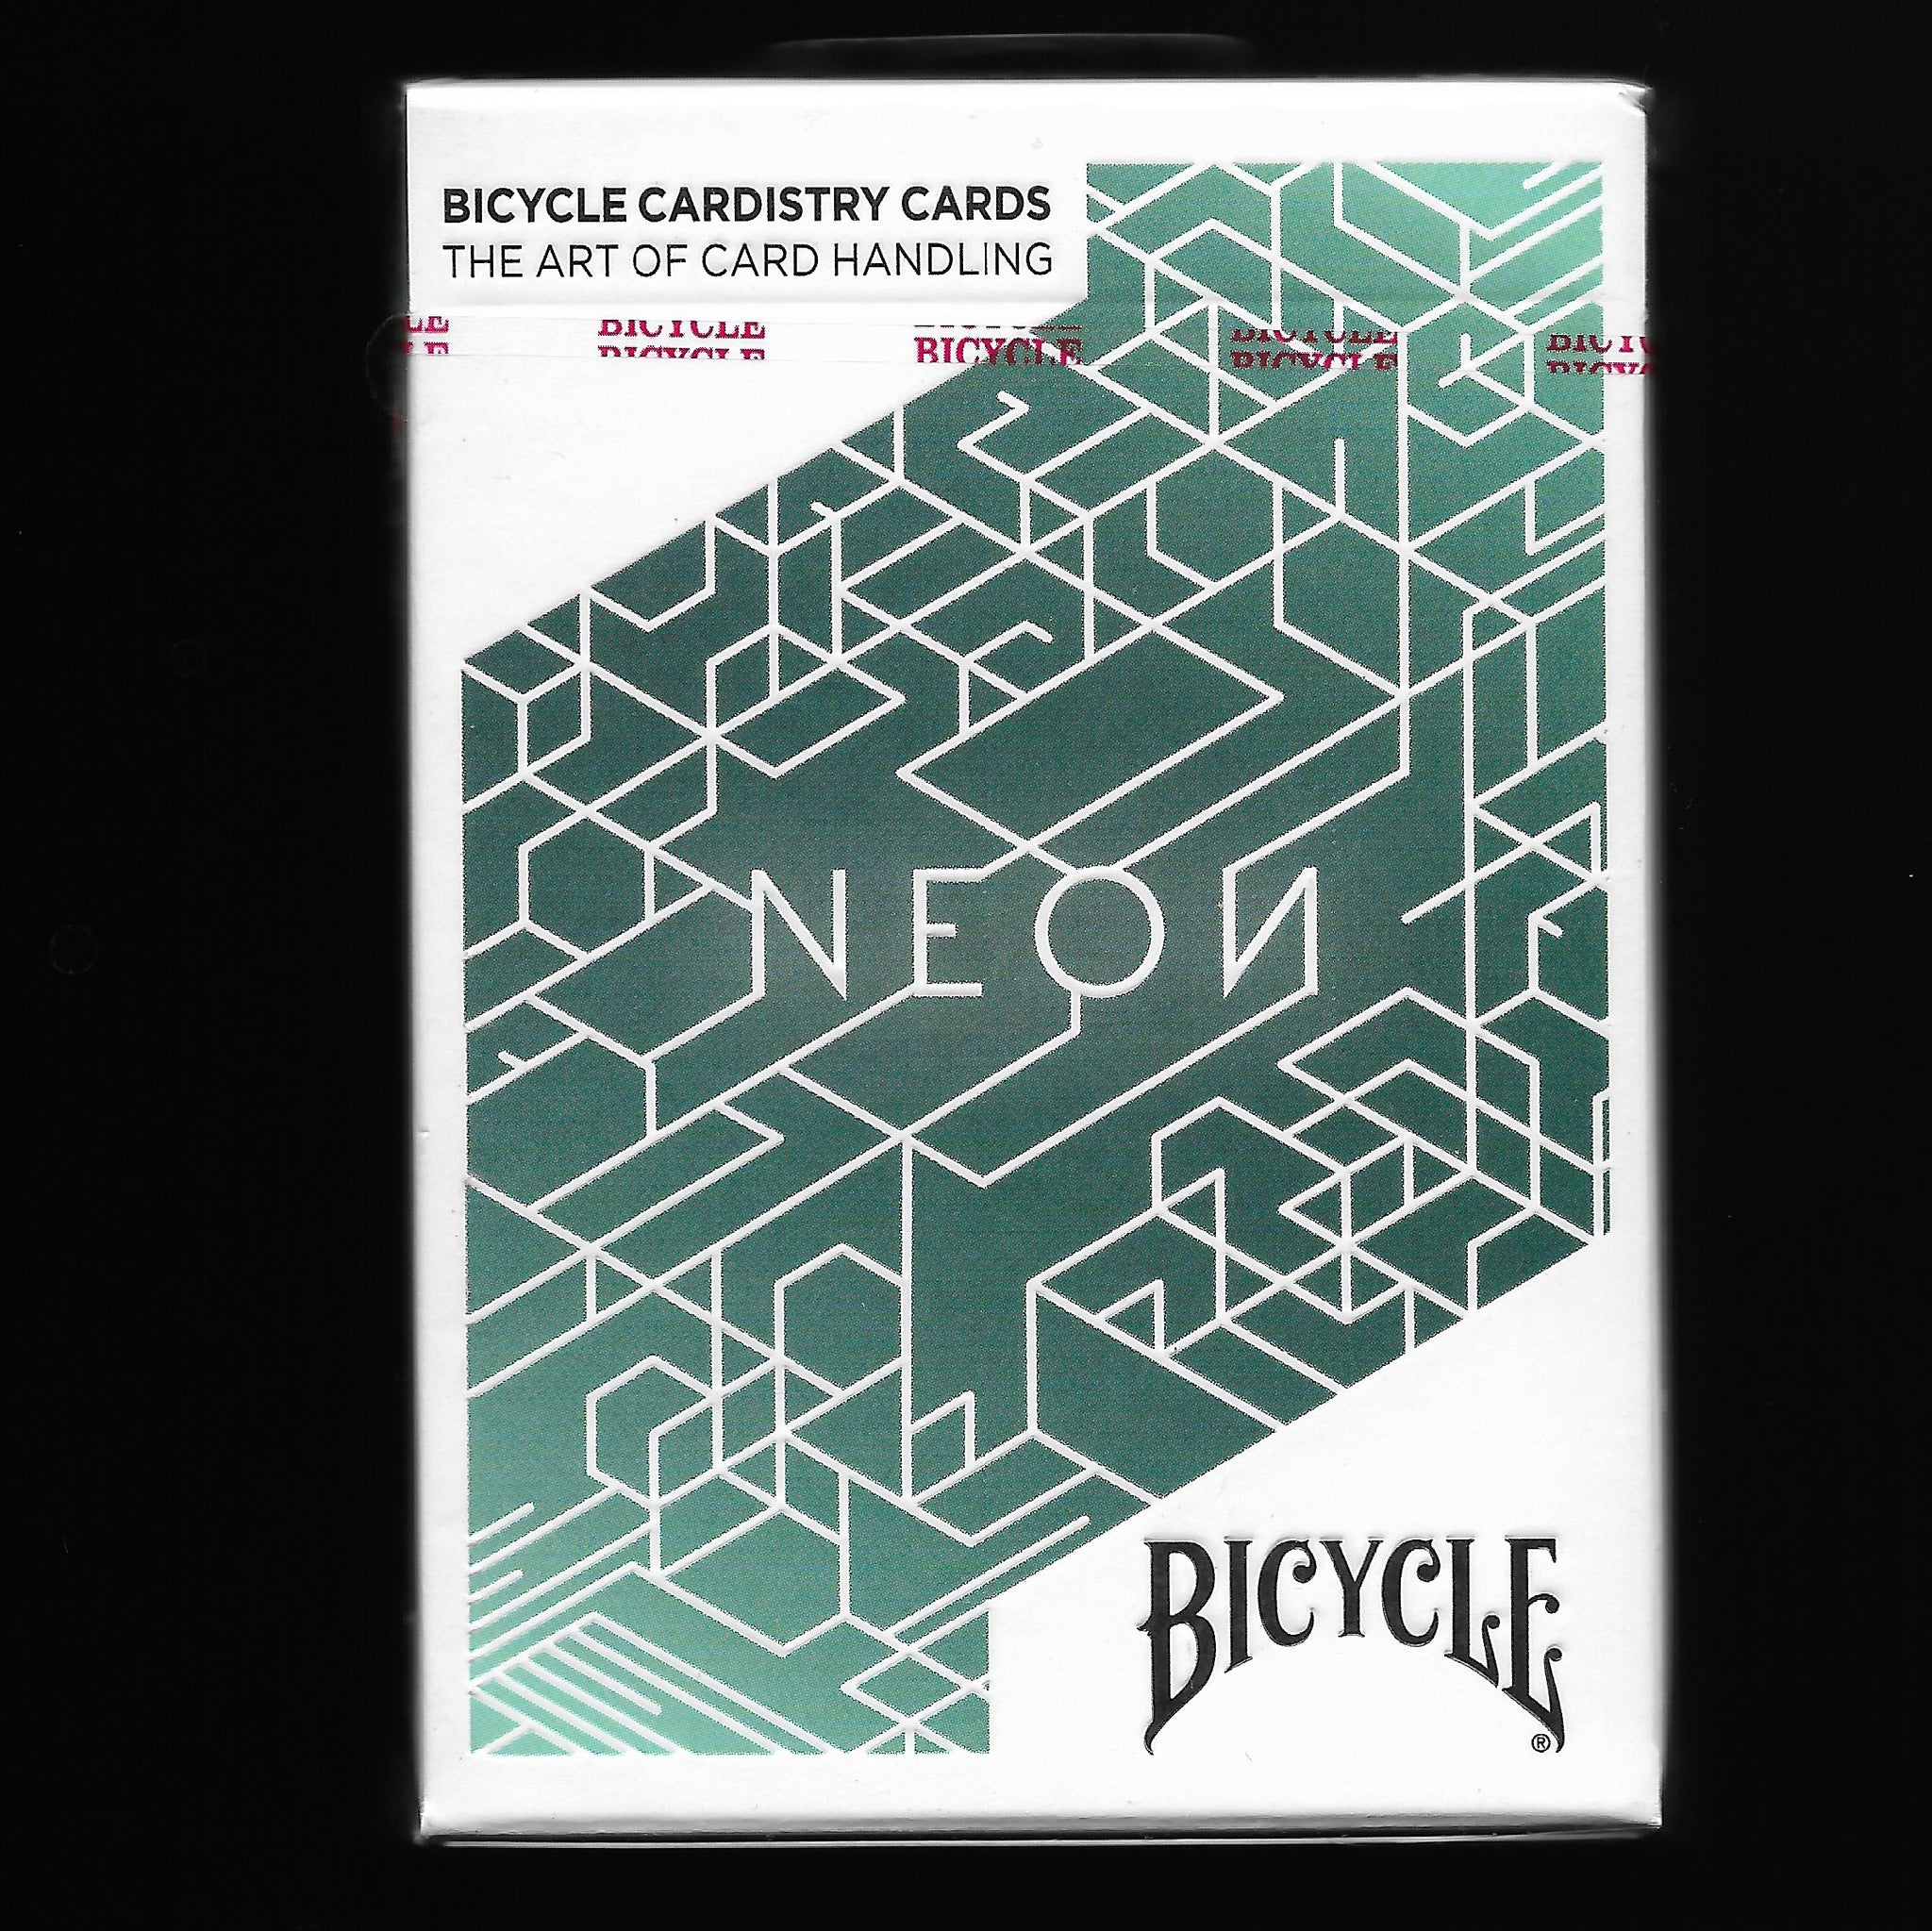 Bicycle Neon Cardistry